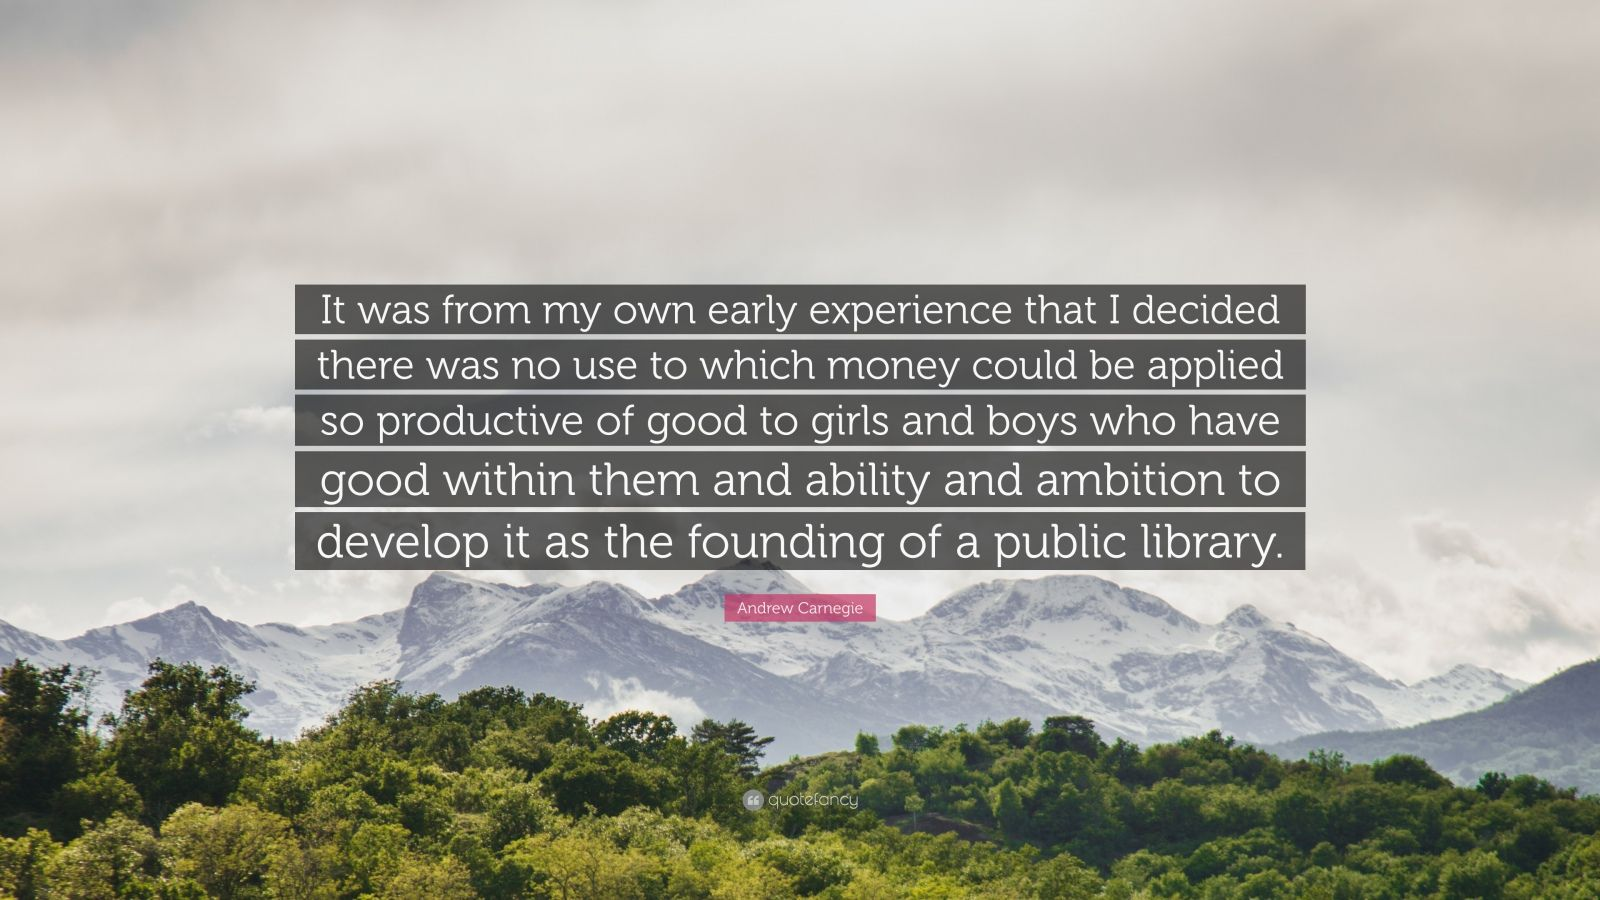 "Andrew Carnegie Quote: ""It was from my own early experience that I decided there was no use to which money could be applied so productive of good to girls and boys who have good within them and ability and ambition to develop it as the founding of a public library."""